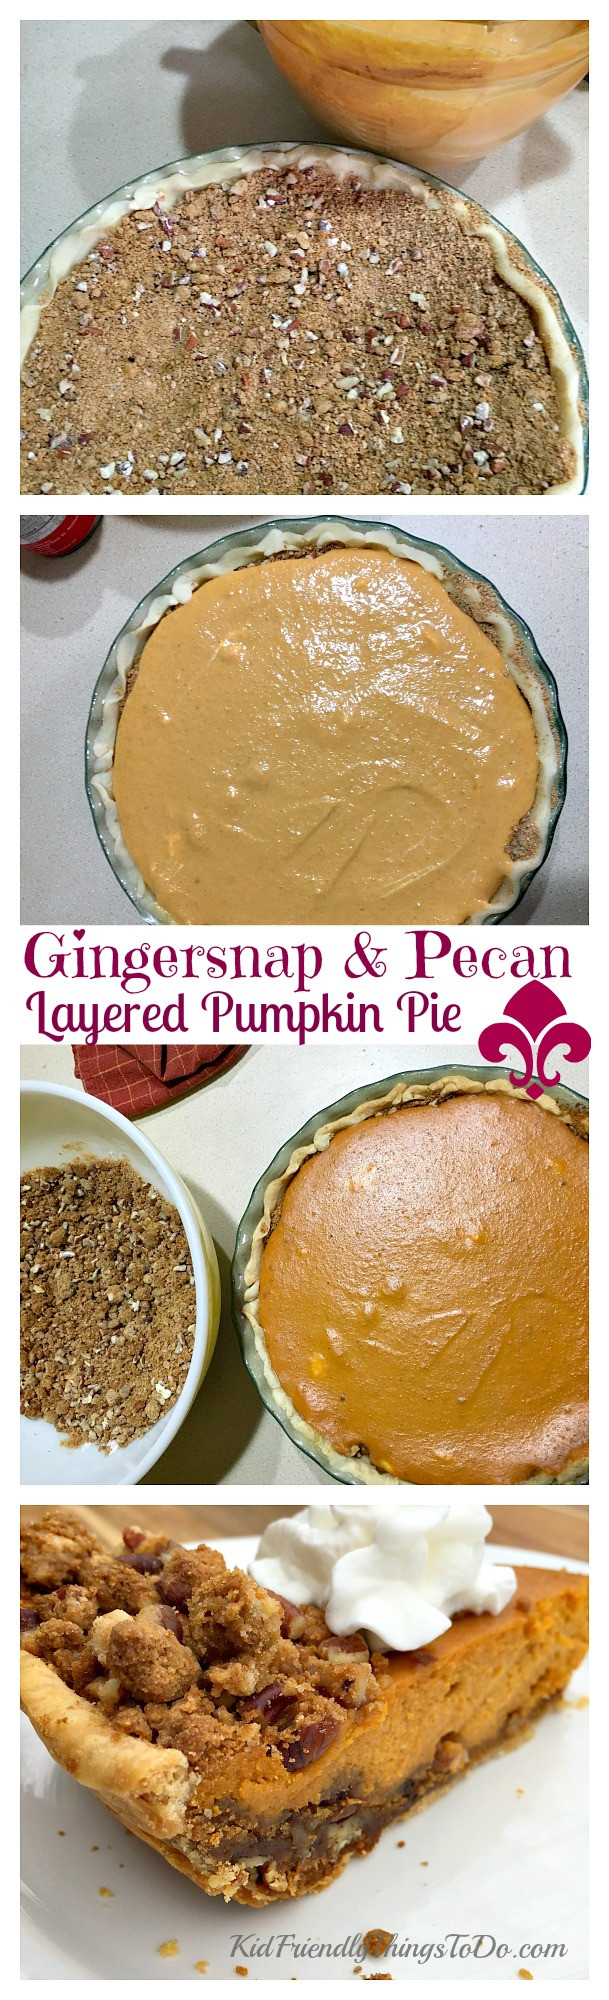 Does Pecan Pie Need To Be Refrigerated  Gingersnap and Pecan Layered Pumpkin Pie Recipe